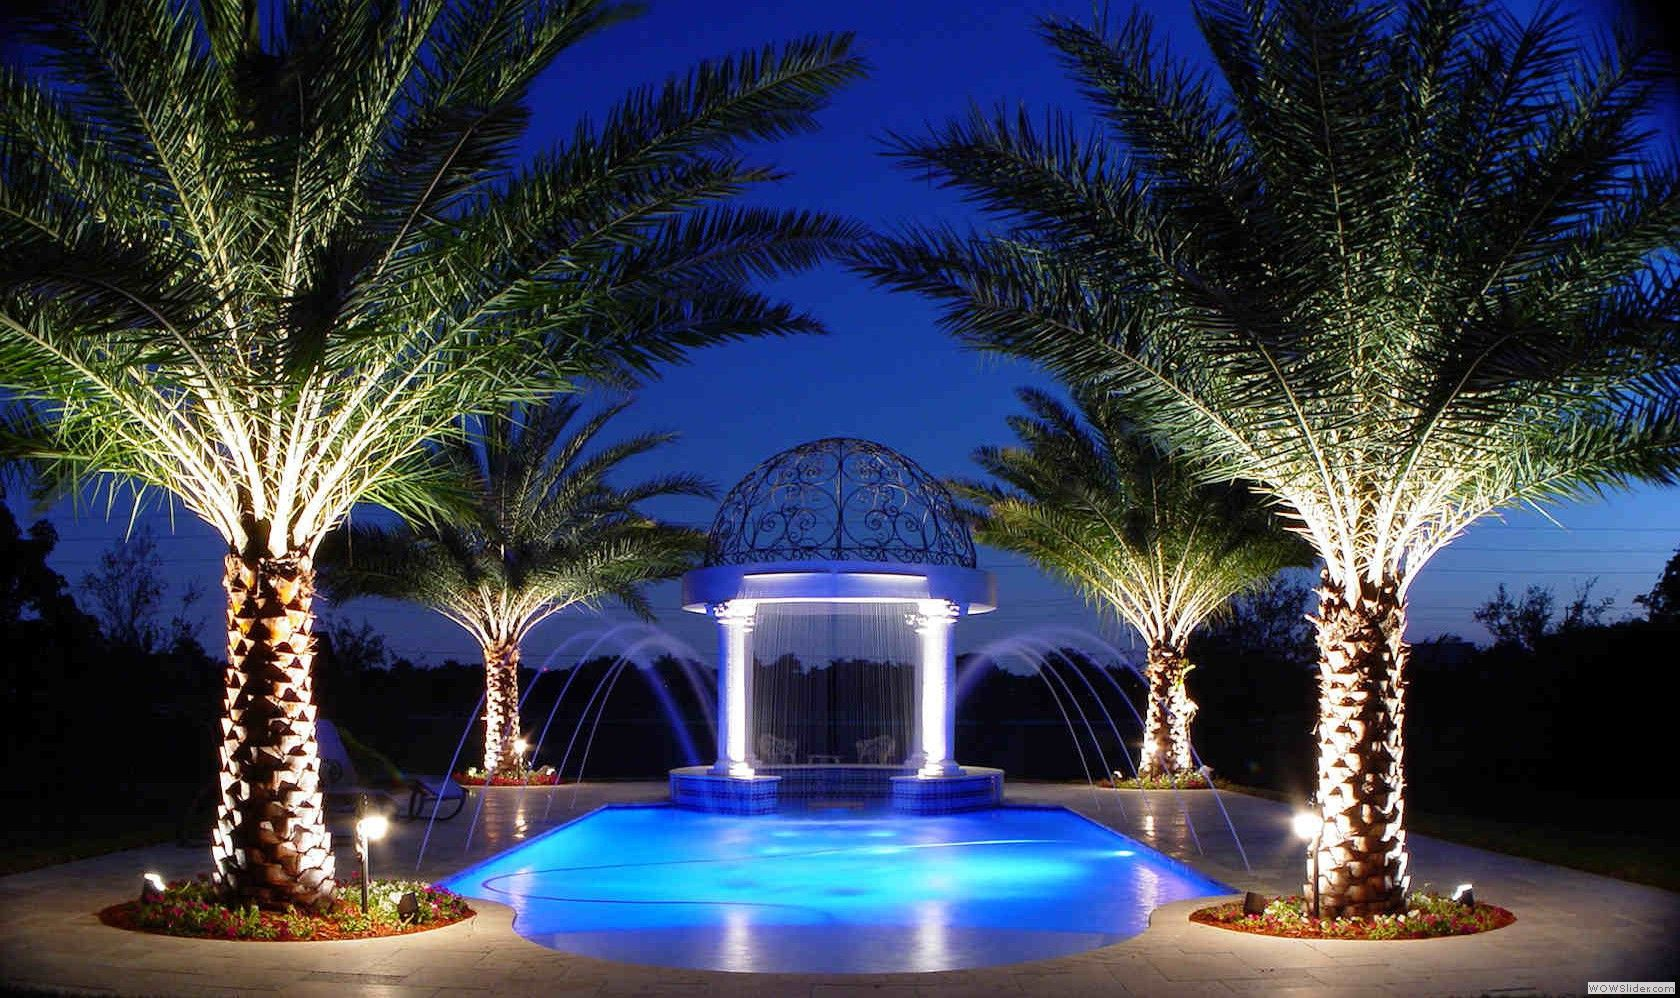 Landscape landscape gardens with low voltage lighting is very landscape landscape gardens with low voltage lighting is very bright and low cost from the mozeypictures Choice Image